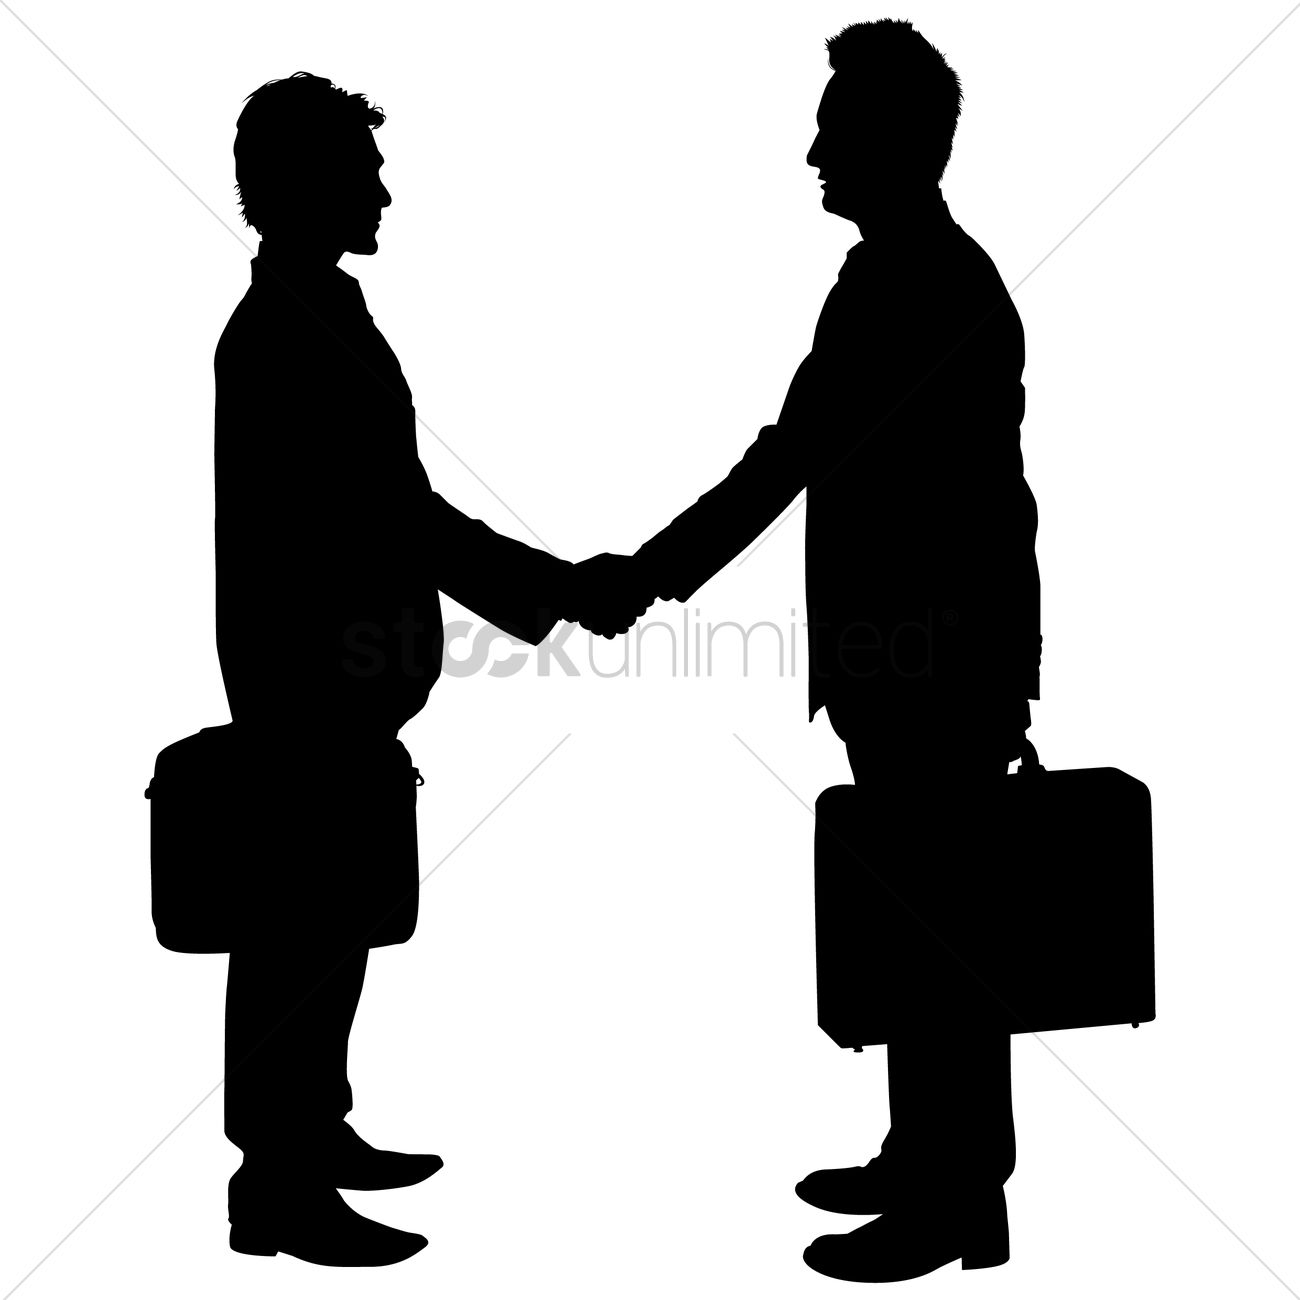 businessman shaking hands silhouette vector graphic - People Shaking Hands PNG HD